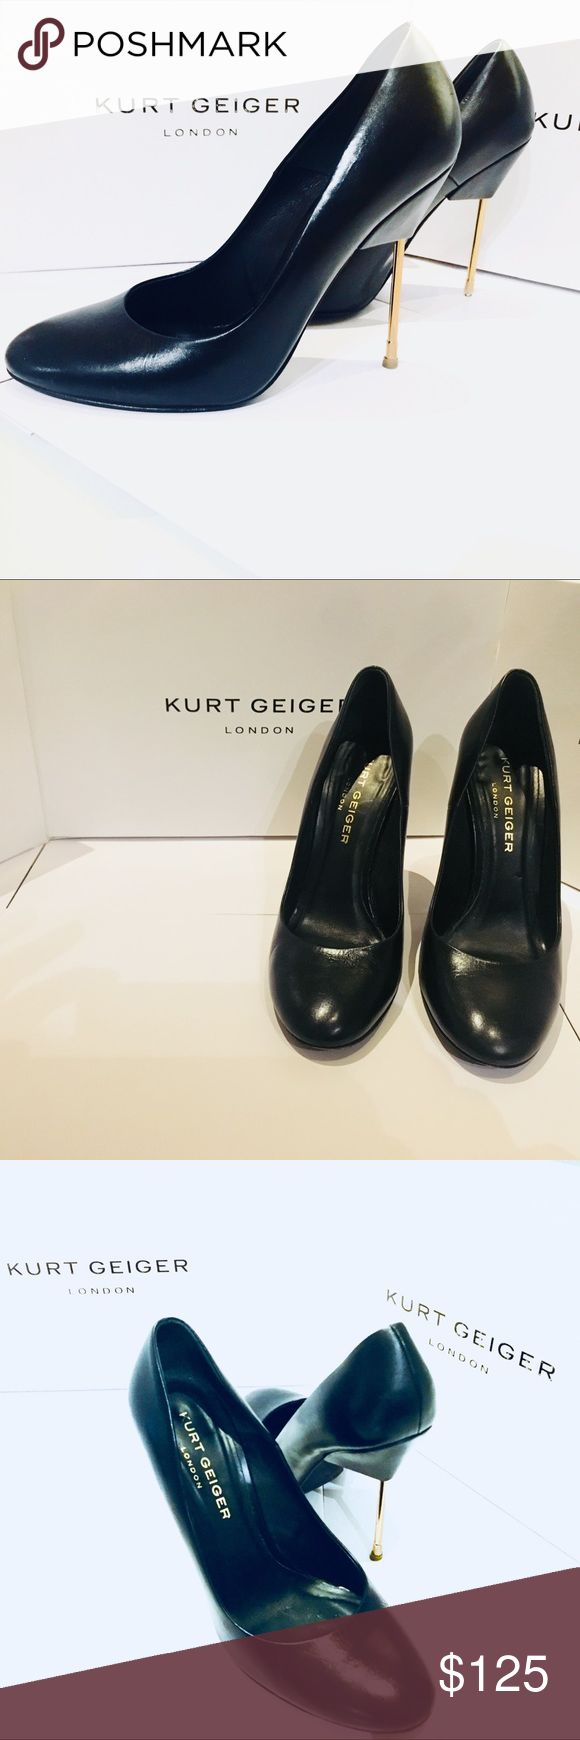 Kurt Geiger London Cigarette Stiletto Kurt Geiger of London Black Leather Metallic Gold Cigarette Stiletto is a beautifully hand made shoes with a leather interior.  These are perfectly balanced for comfort.  Worn a few times.  Comes in original box. kurt geiger Shoes Heels